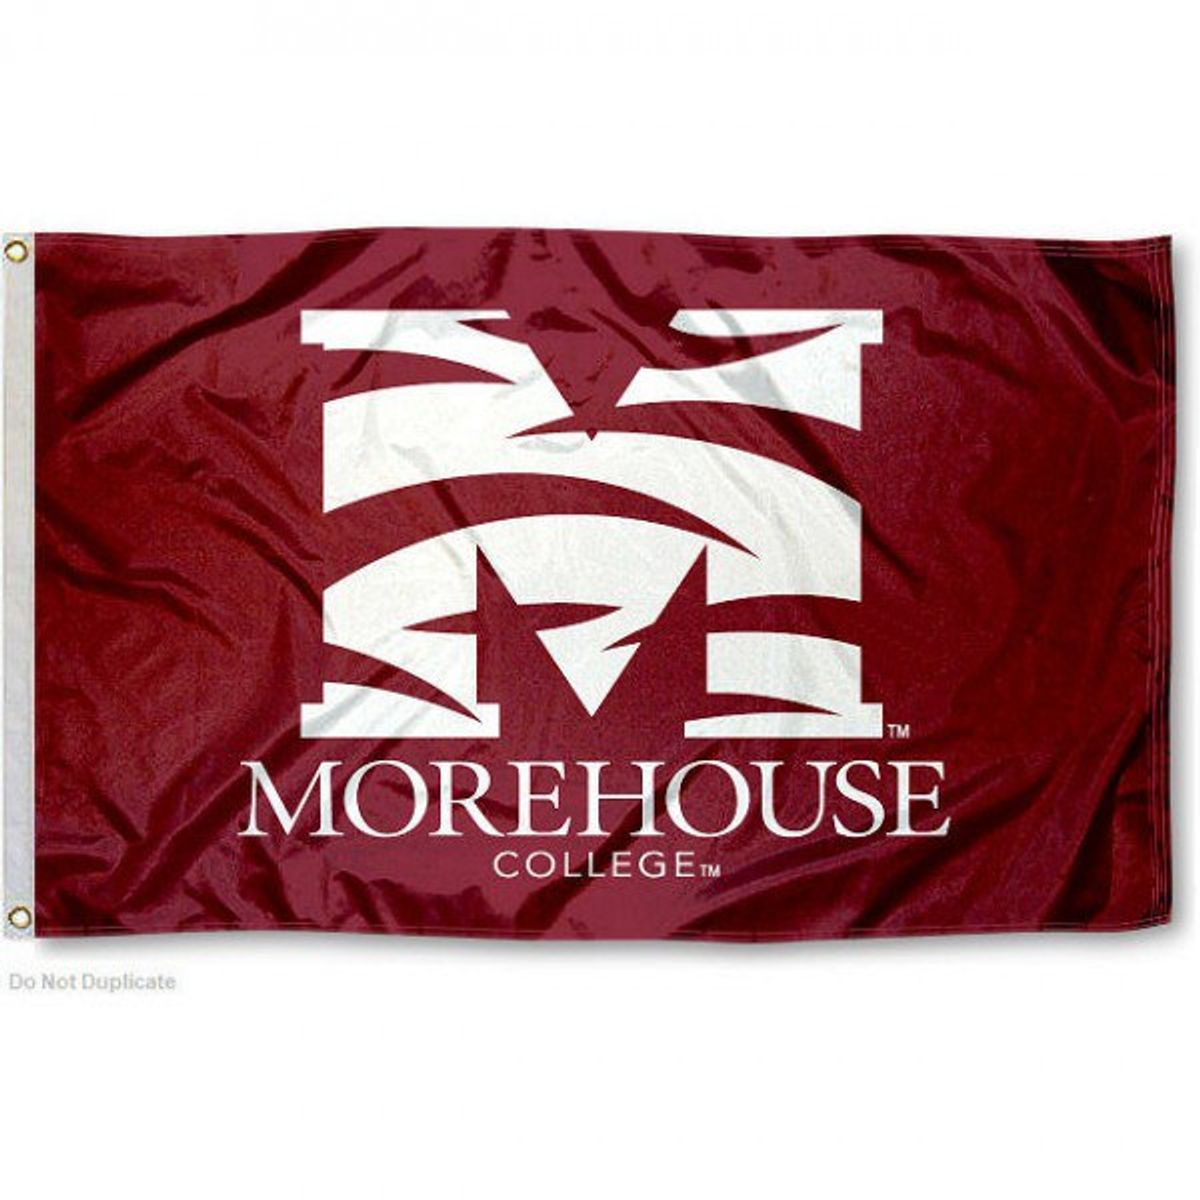 What Morehouse Has Done For Me